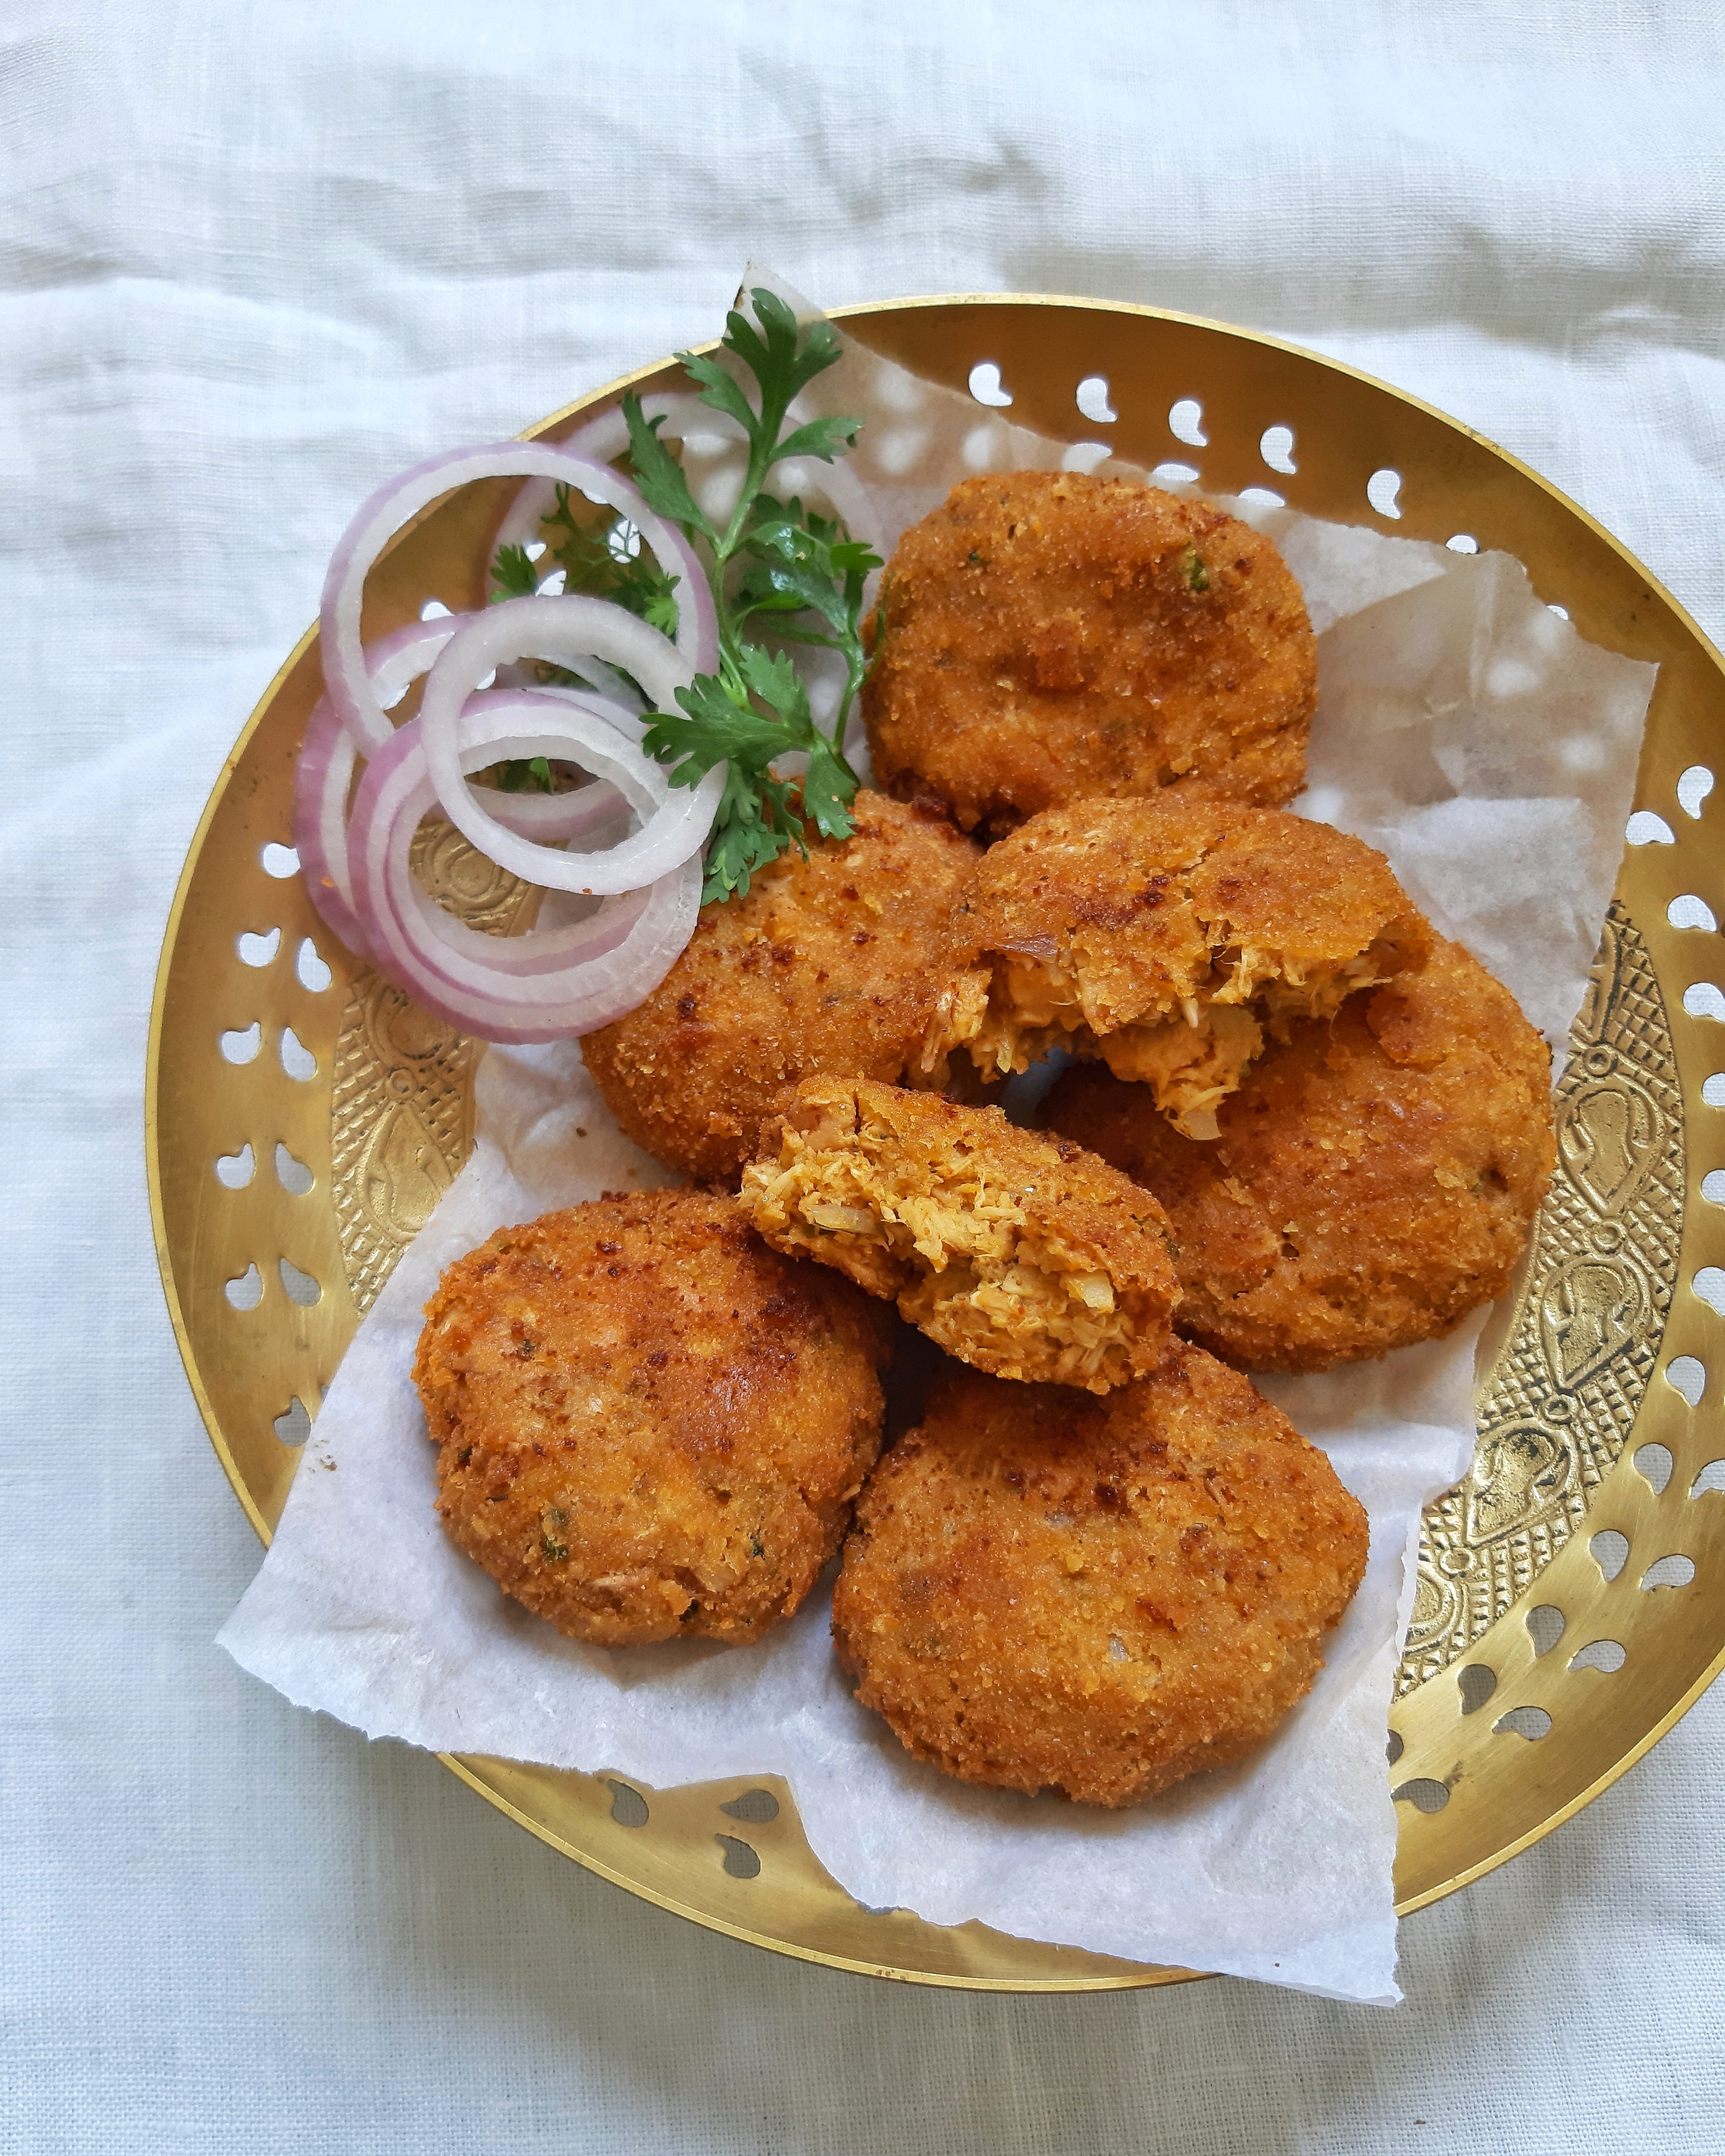 Raw jackfruit cutlets